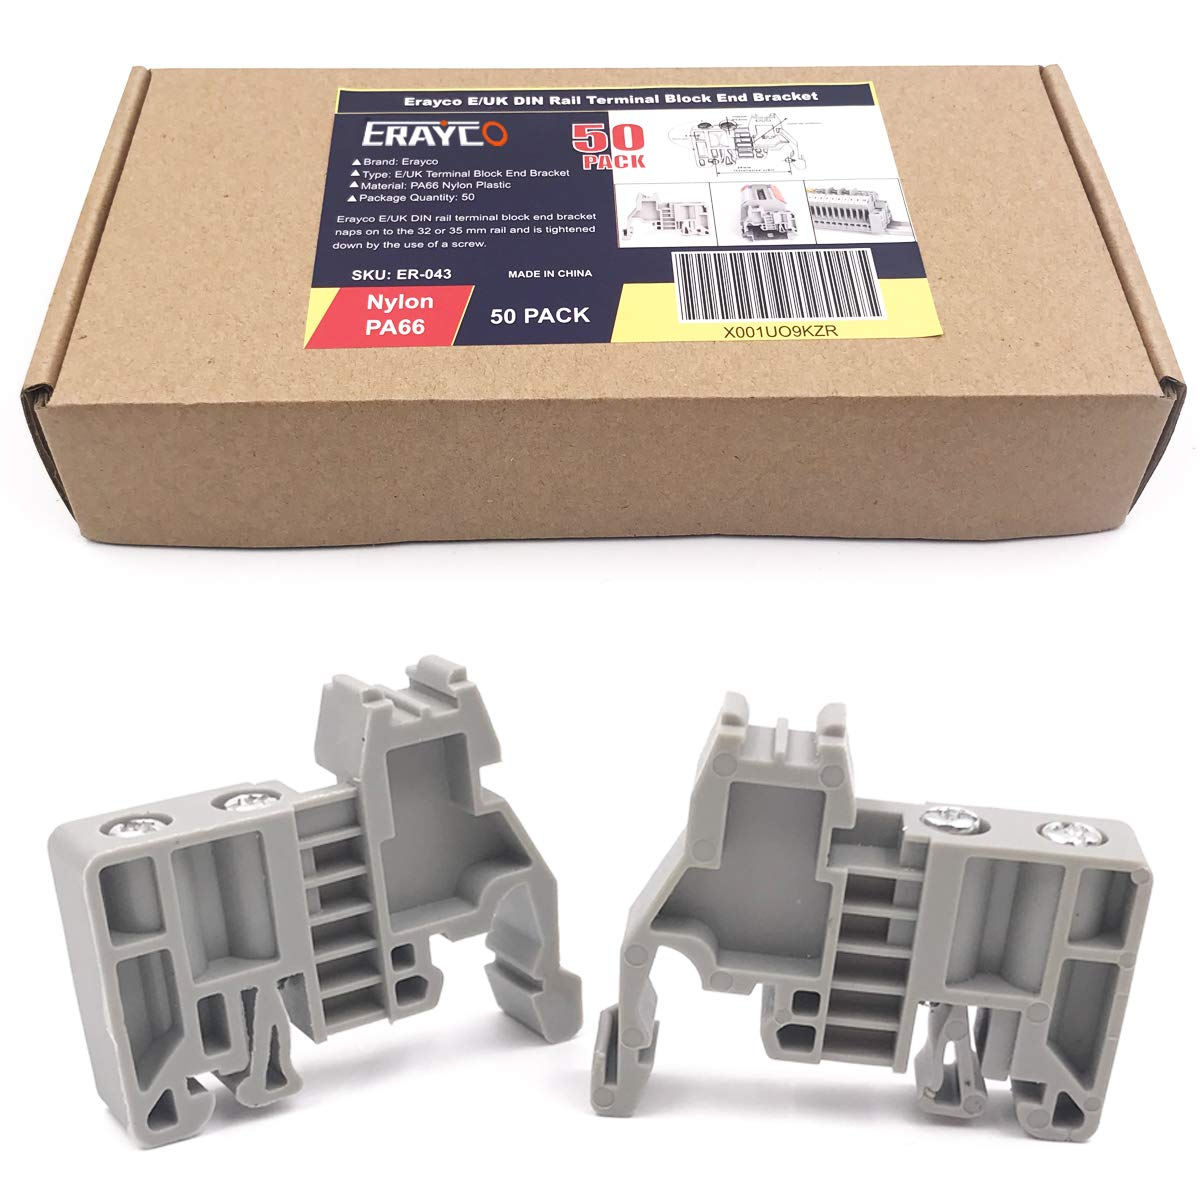 Erayco E/UK DIN Rail Terminal Blocks End Stopper Bracket Grey, Terminal Block Connector (Pack of 50) by Erayco